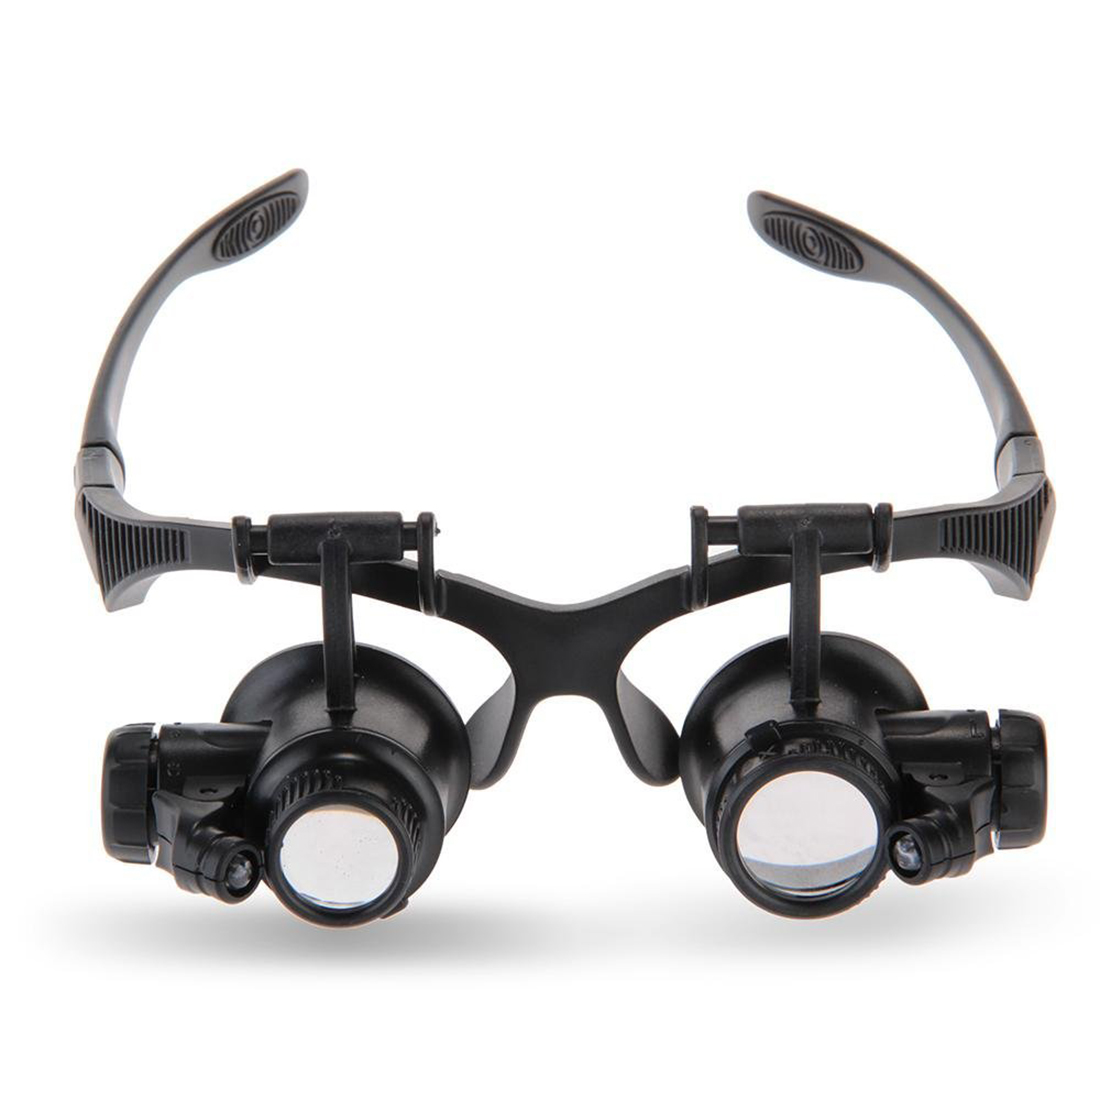 10X 15X 20X 25X Headband Eyewear Watch Repair Watchmaker Magnifier Loupe Jeweler Magnifying Glasses Tool With Lamp LED Light